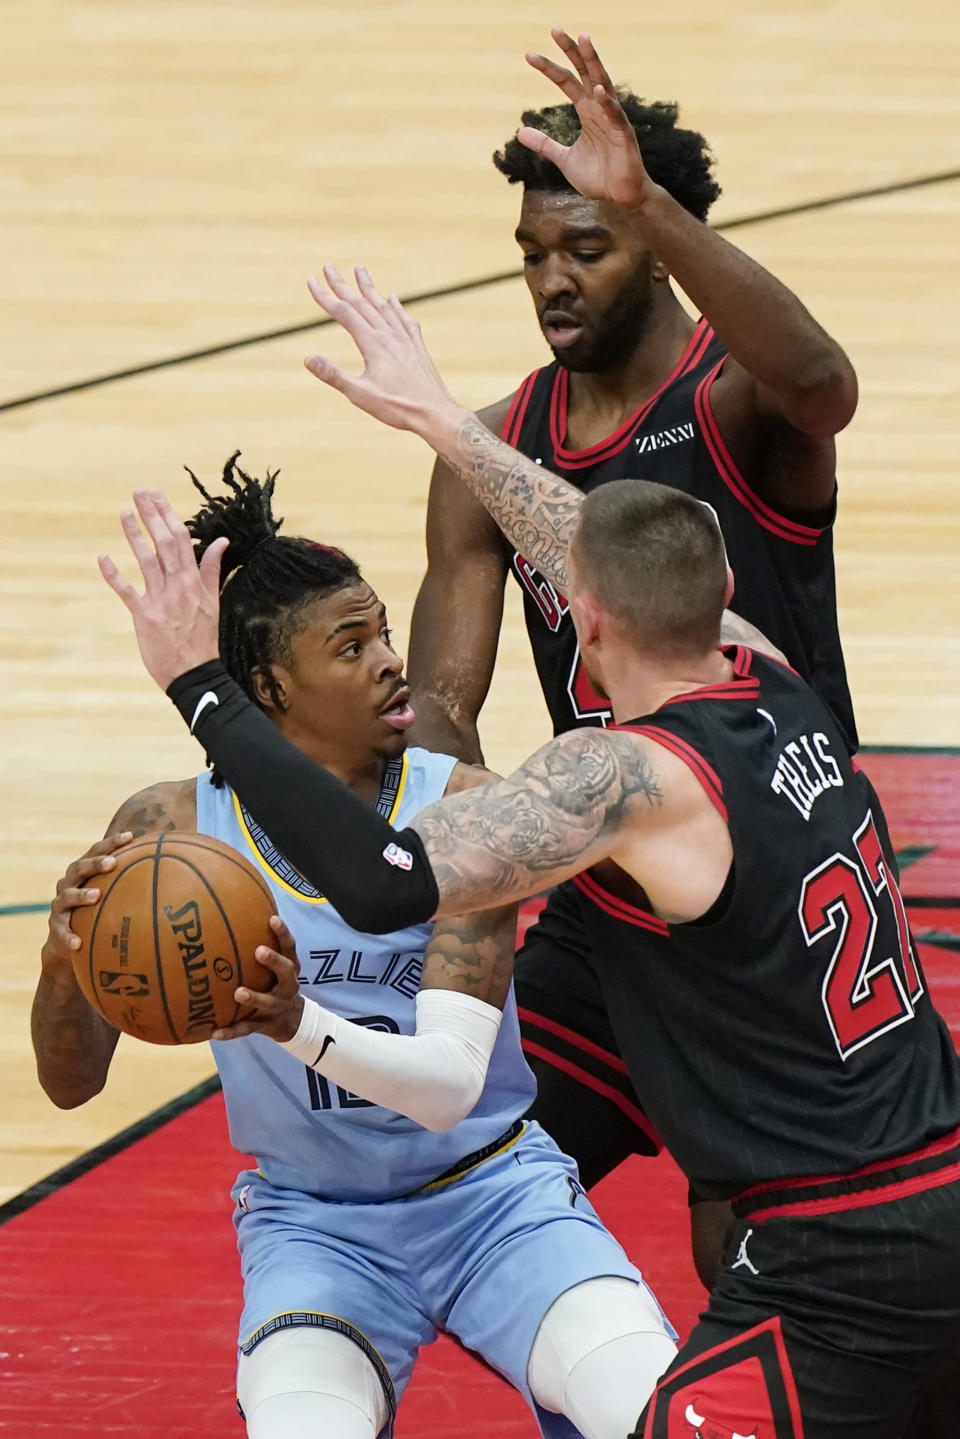 Memphis Grizzlies guard Ja Morant, left, looks to pass the ball as Chicago Bulls center Daniel Theis, right, and forward Patrick Williams defend during the first half of an NBA basketball game in Chicago, Friday, April 16, 2021. (AP Photo/Nam Y. Huh)